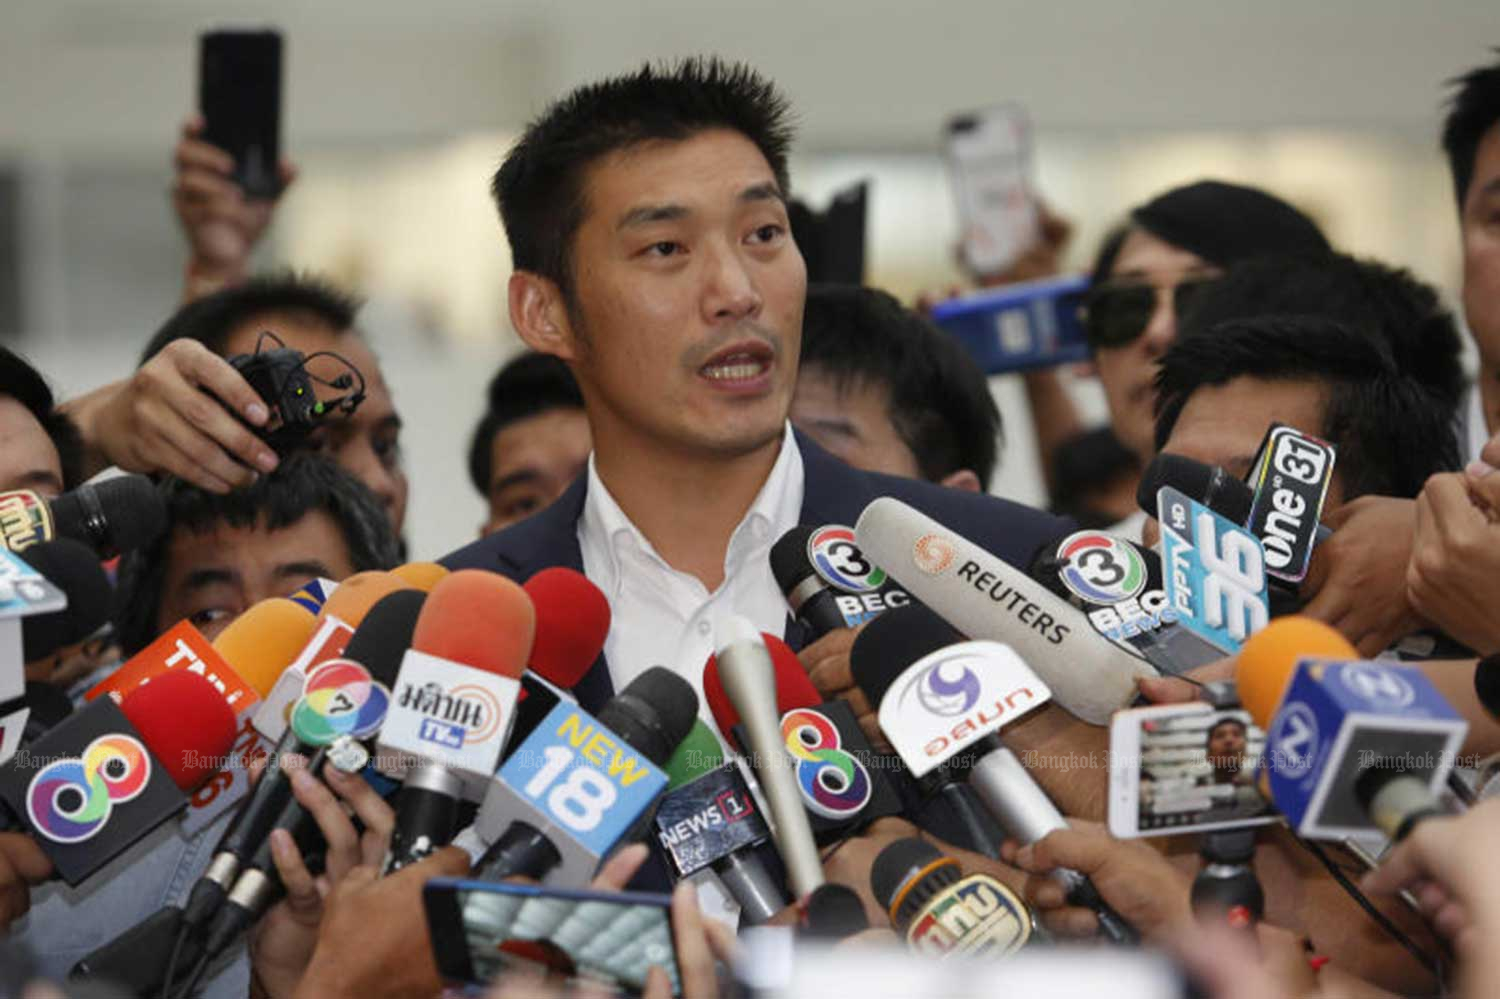 Future Forward Party leader Thanathorn Juangroongruangkit says he is not seeking